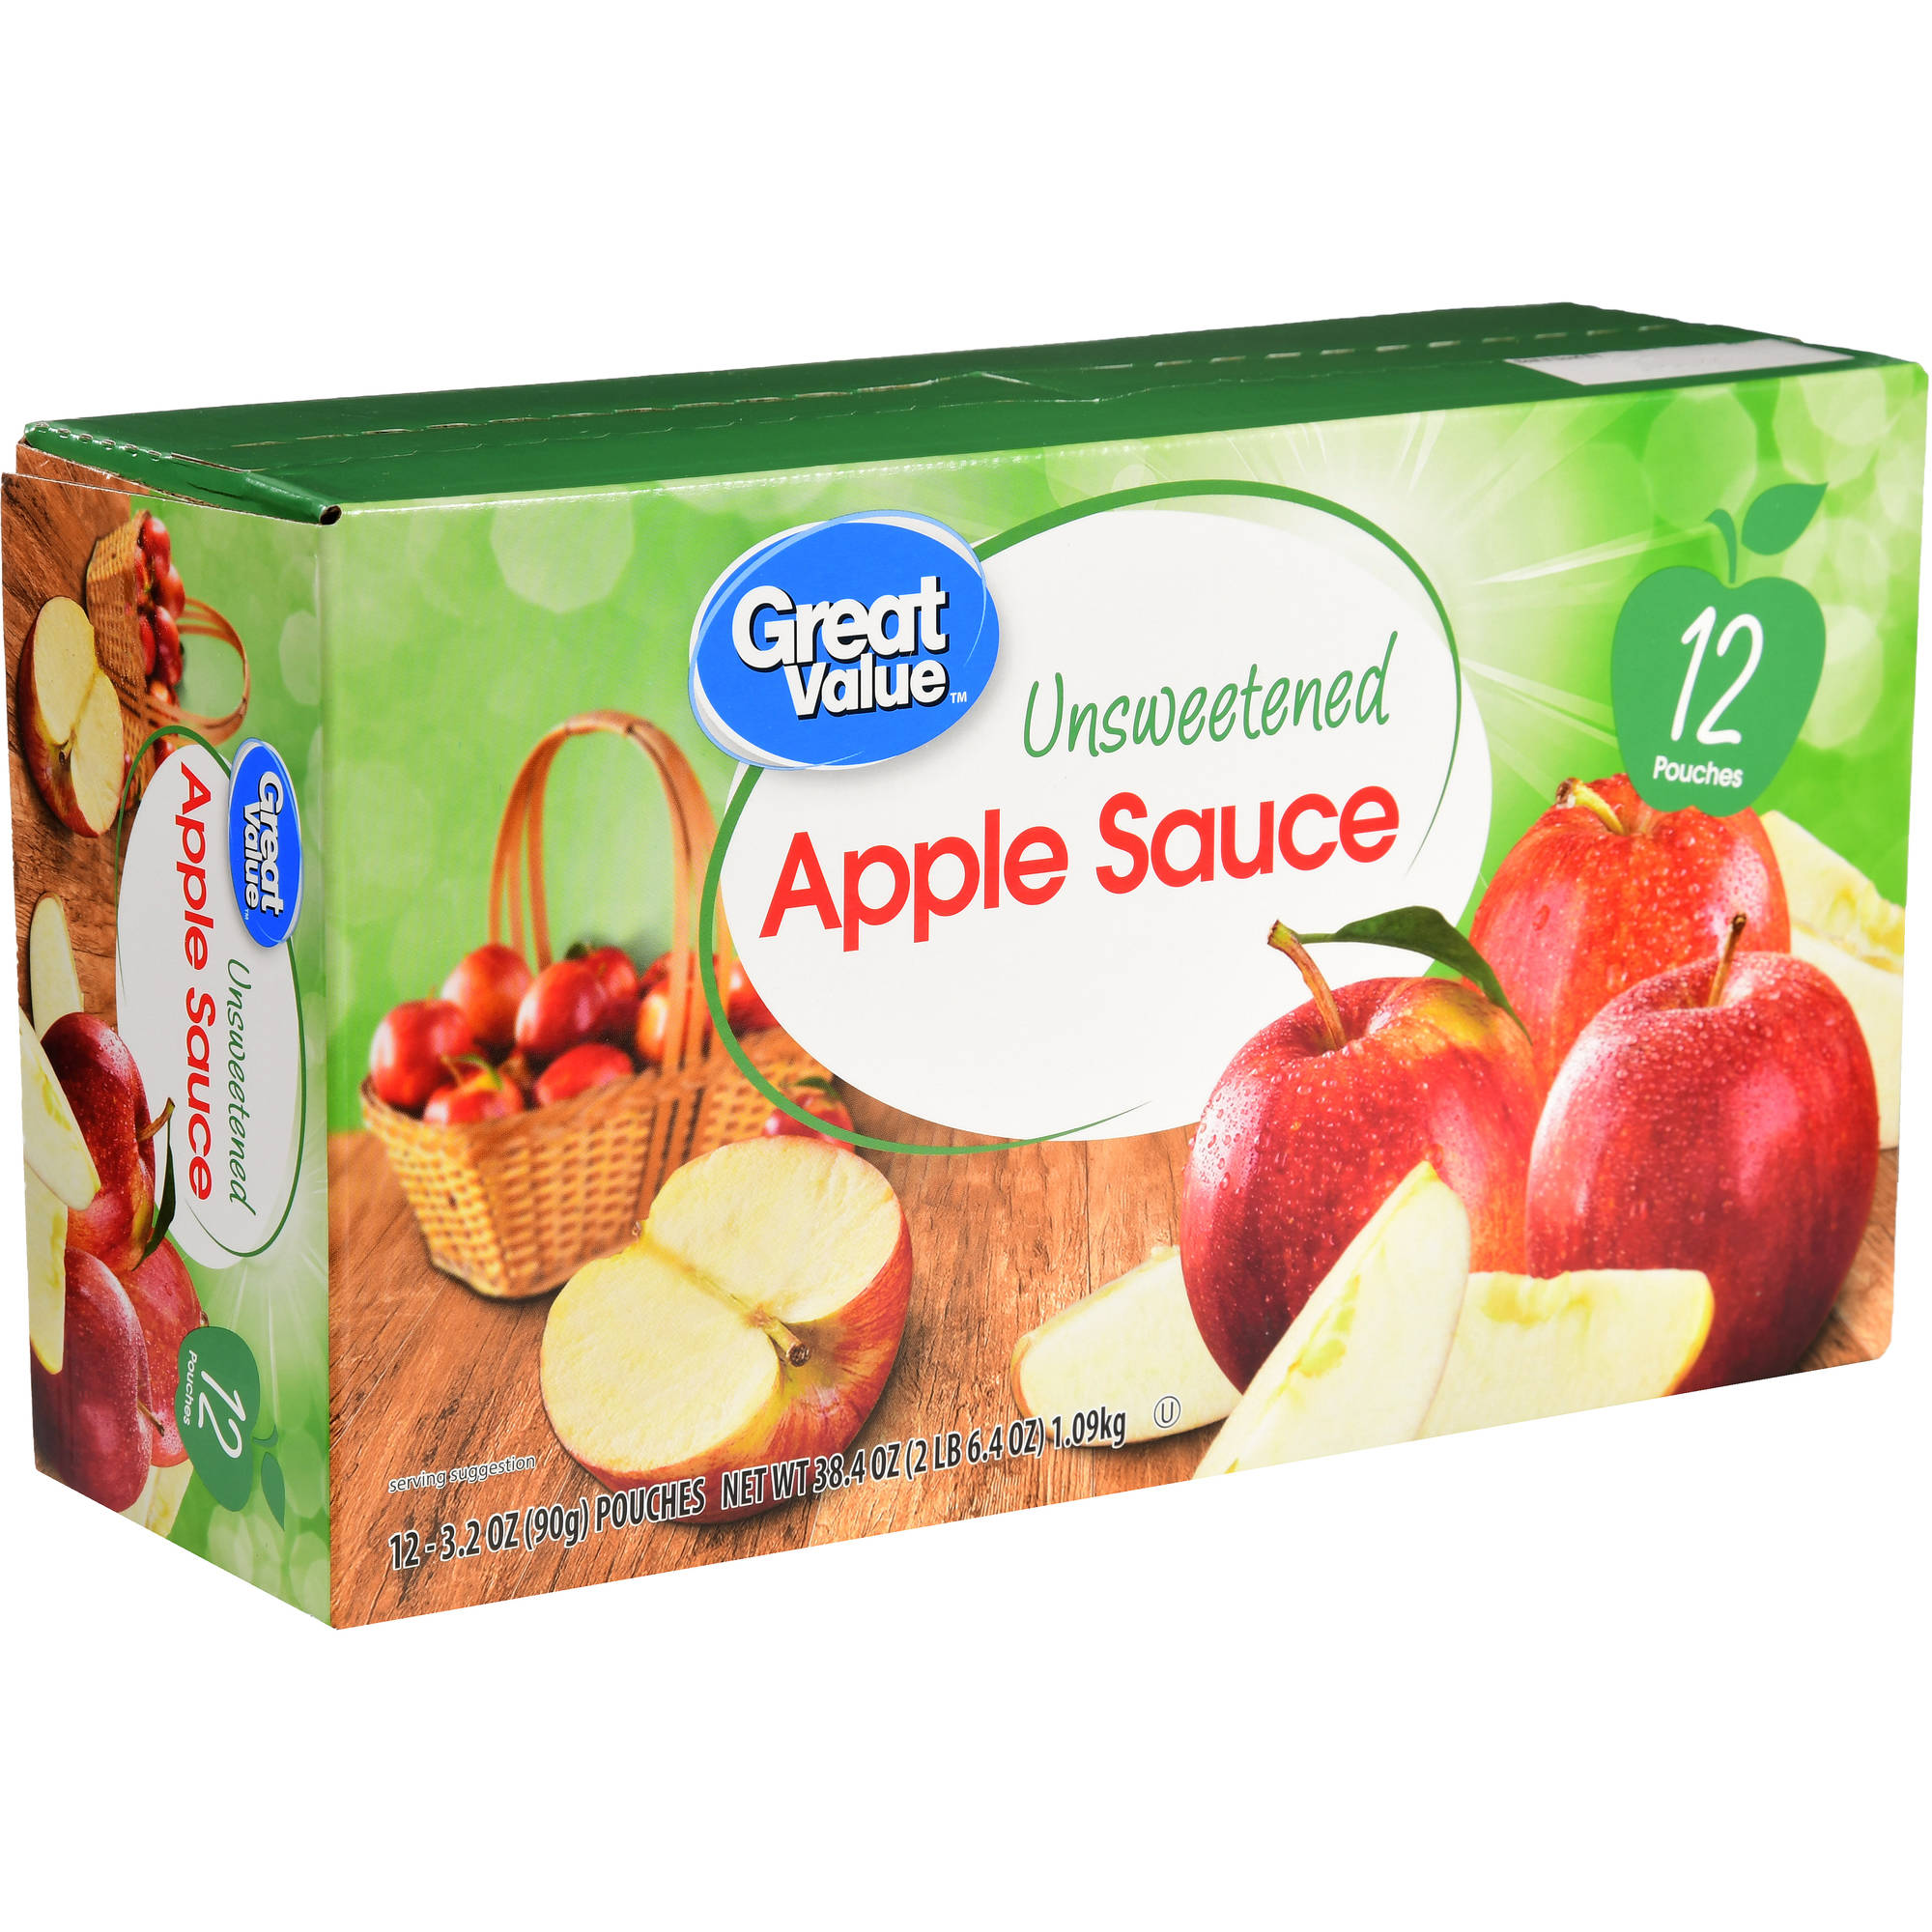 Great Value Applesauce Pouches, Unsweetened, 12 Count